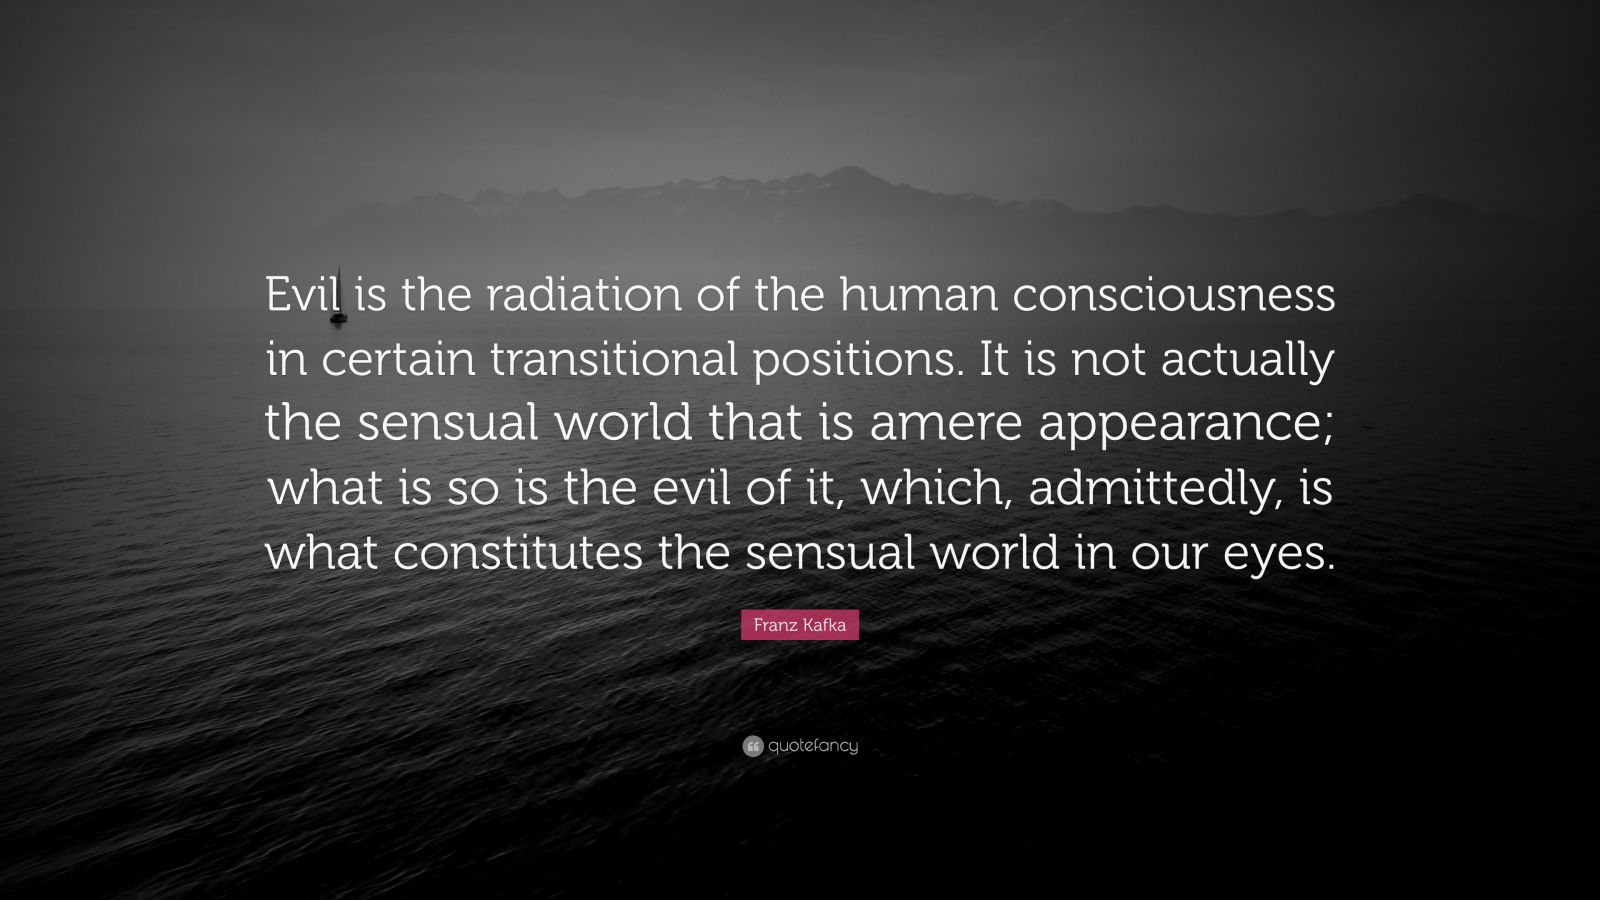 "Franz Kafka Quote: ""Evil is the radiation of the human consciousness in certain transitional positions. It is not actually the sensual world that is amere appearance; what is so is the evil of it, which, admittedly, is what constitutes the sensual world in our eyes."""